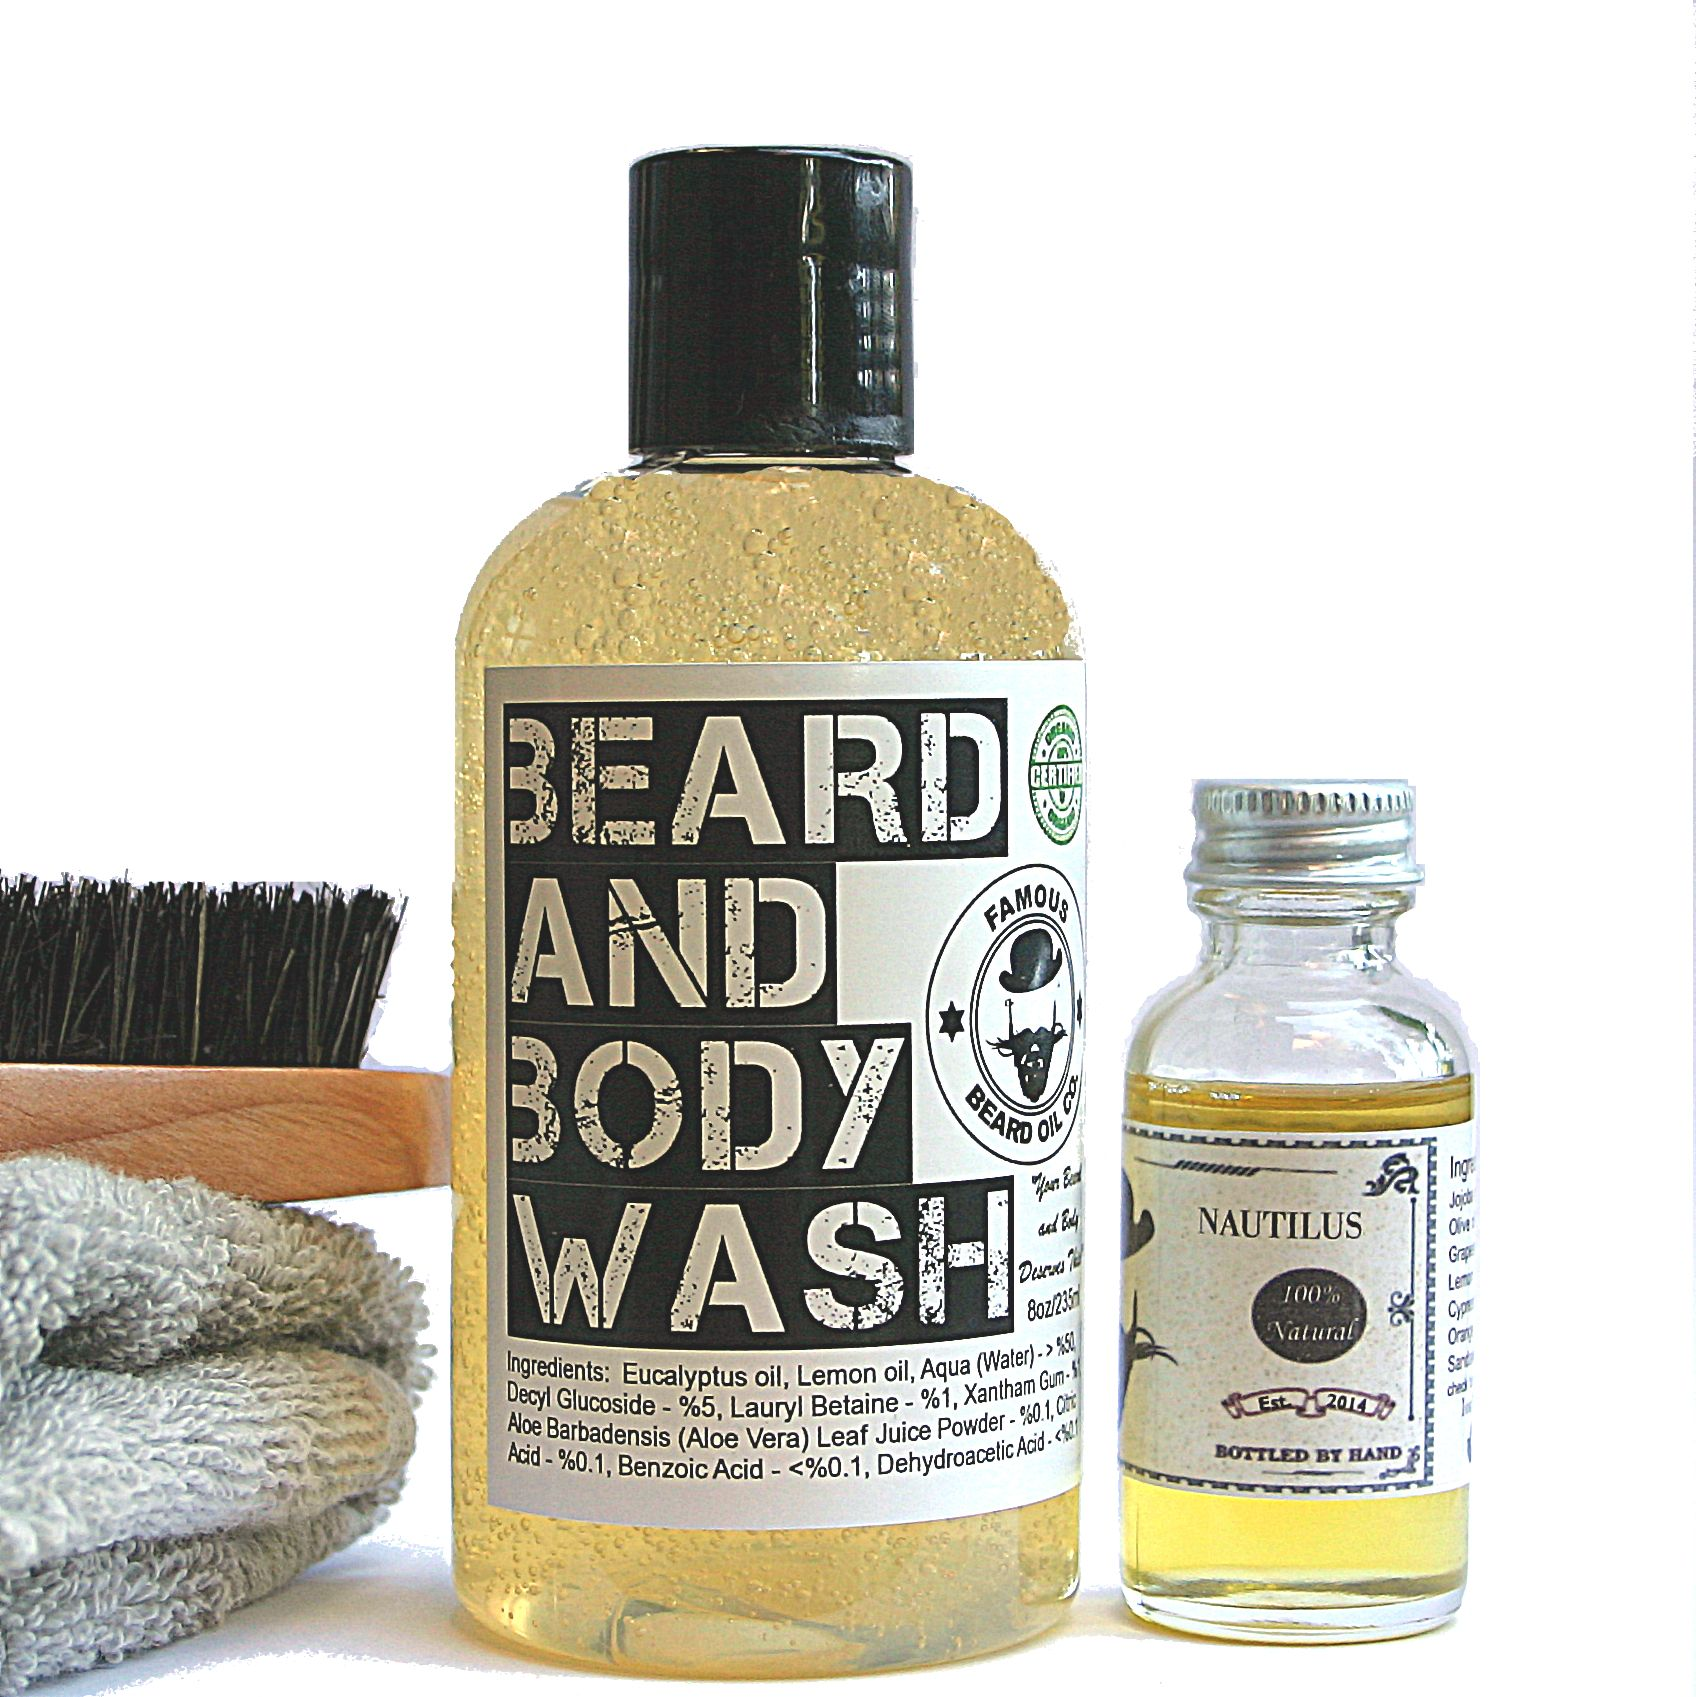 Beard Wash Beard Oil Set The Famous Beard Oil Co Beard Wash Beard Oil Set Beard Oil